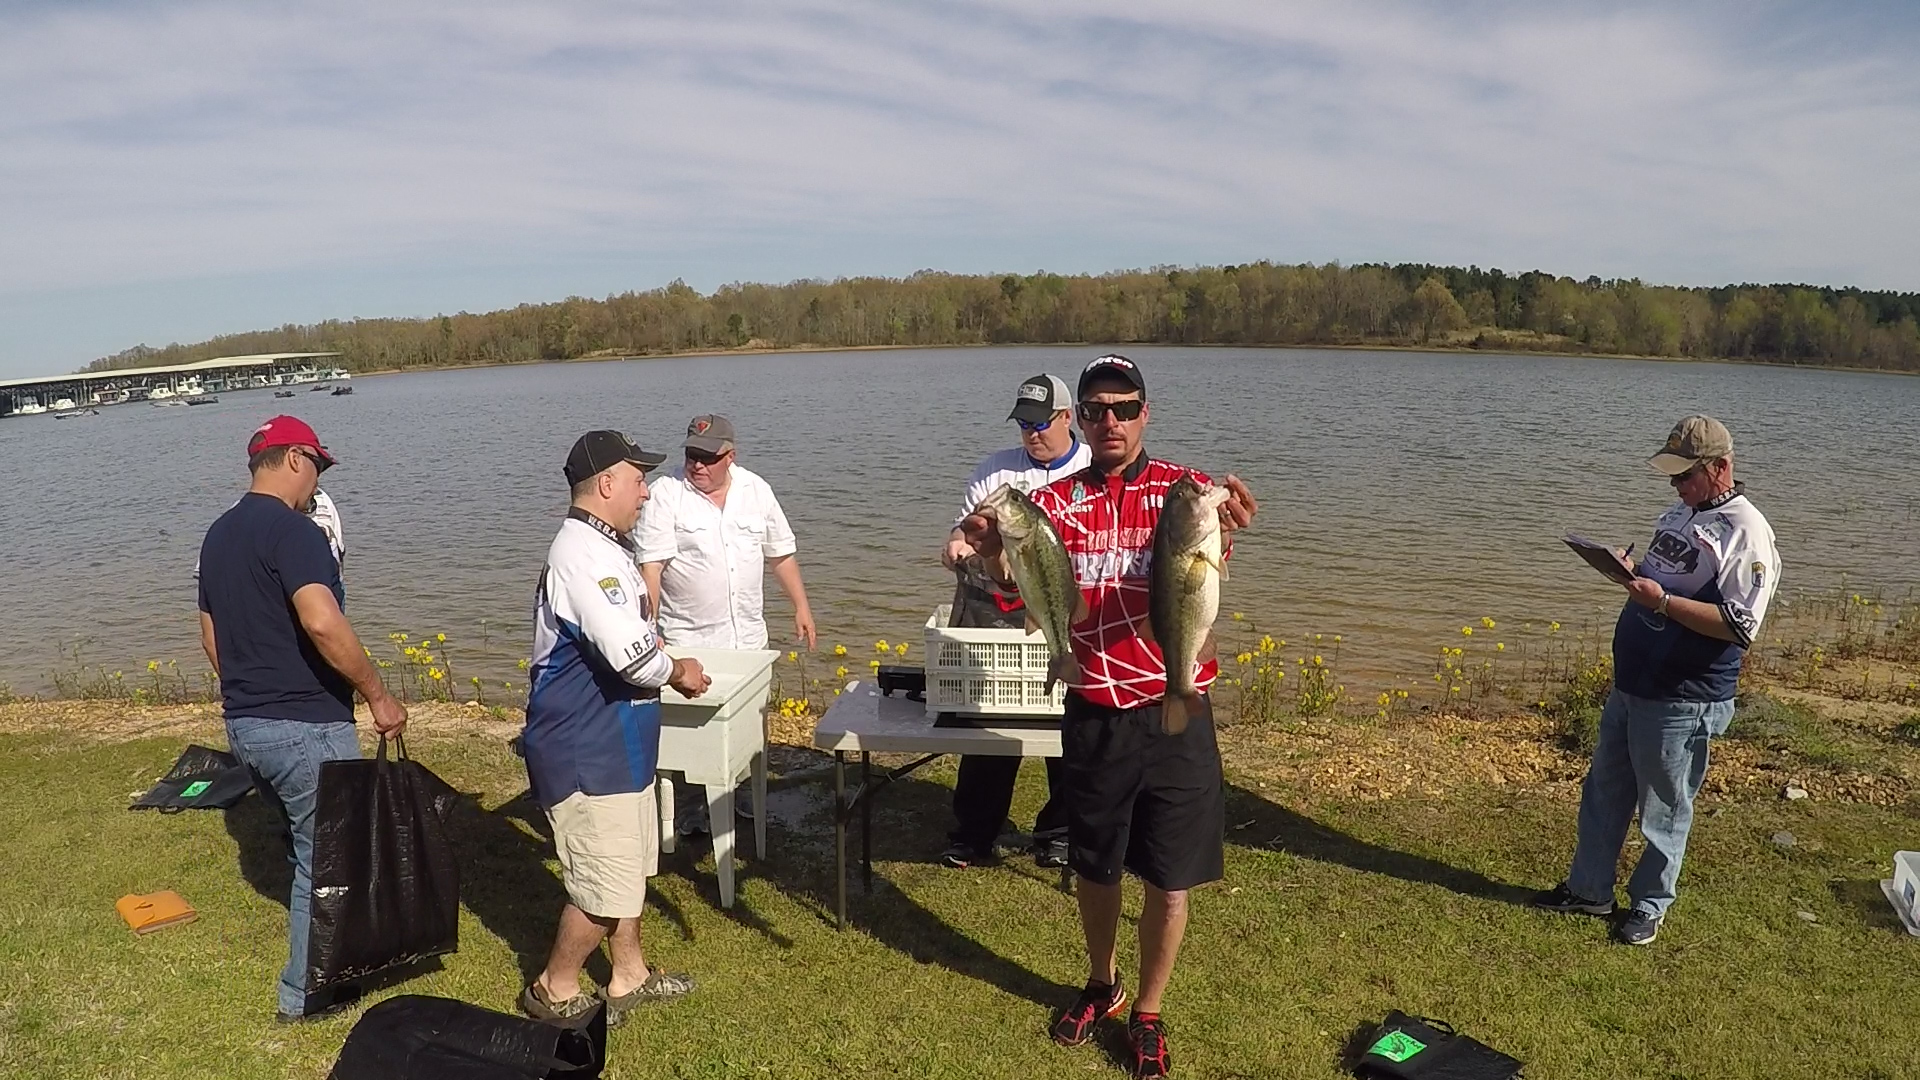 kentucky lake tournament23